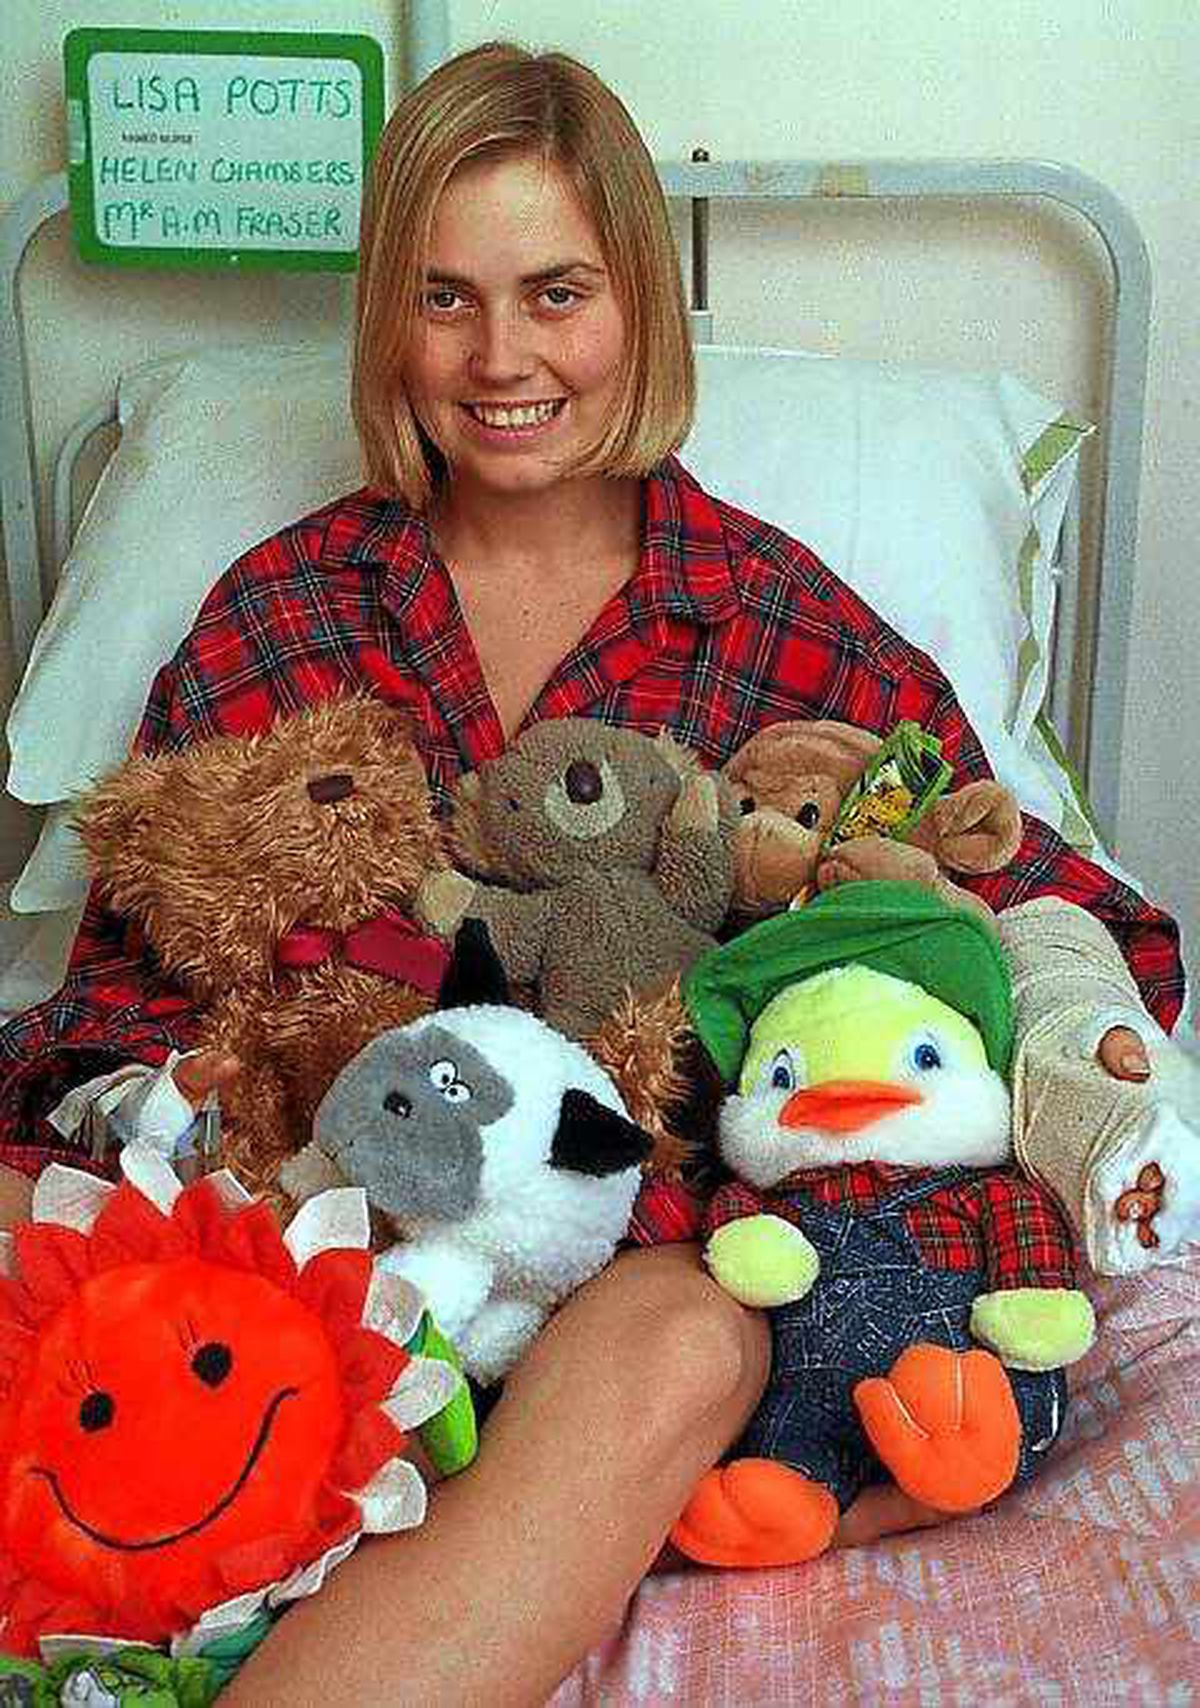 All smiles – Lisa Potts recovering in hospital following the horrific attack